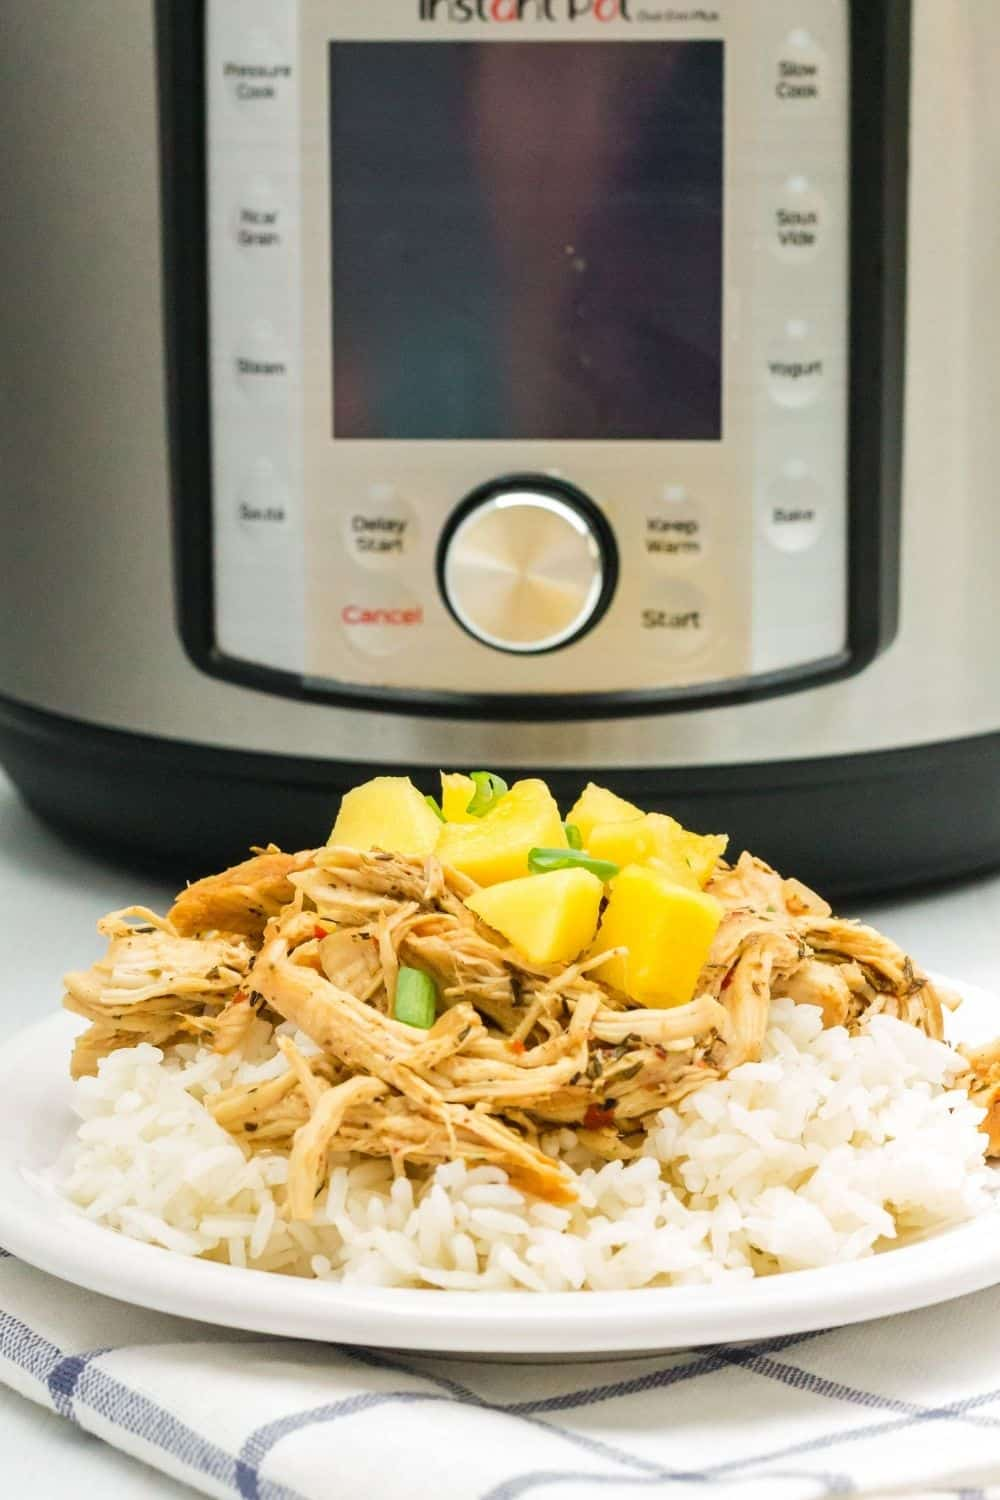 Instant Pot jerk chicken served over rice on a white plate in the foreground, with an Instant Pot pressure cooker in the background